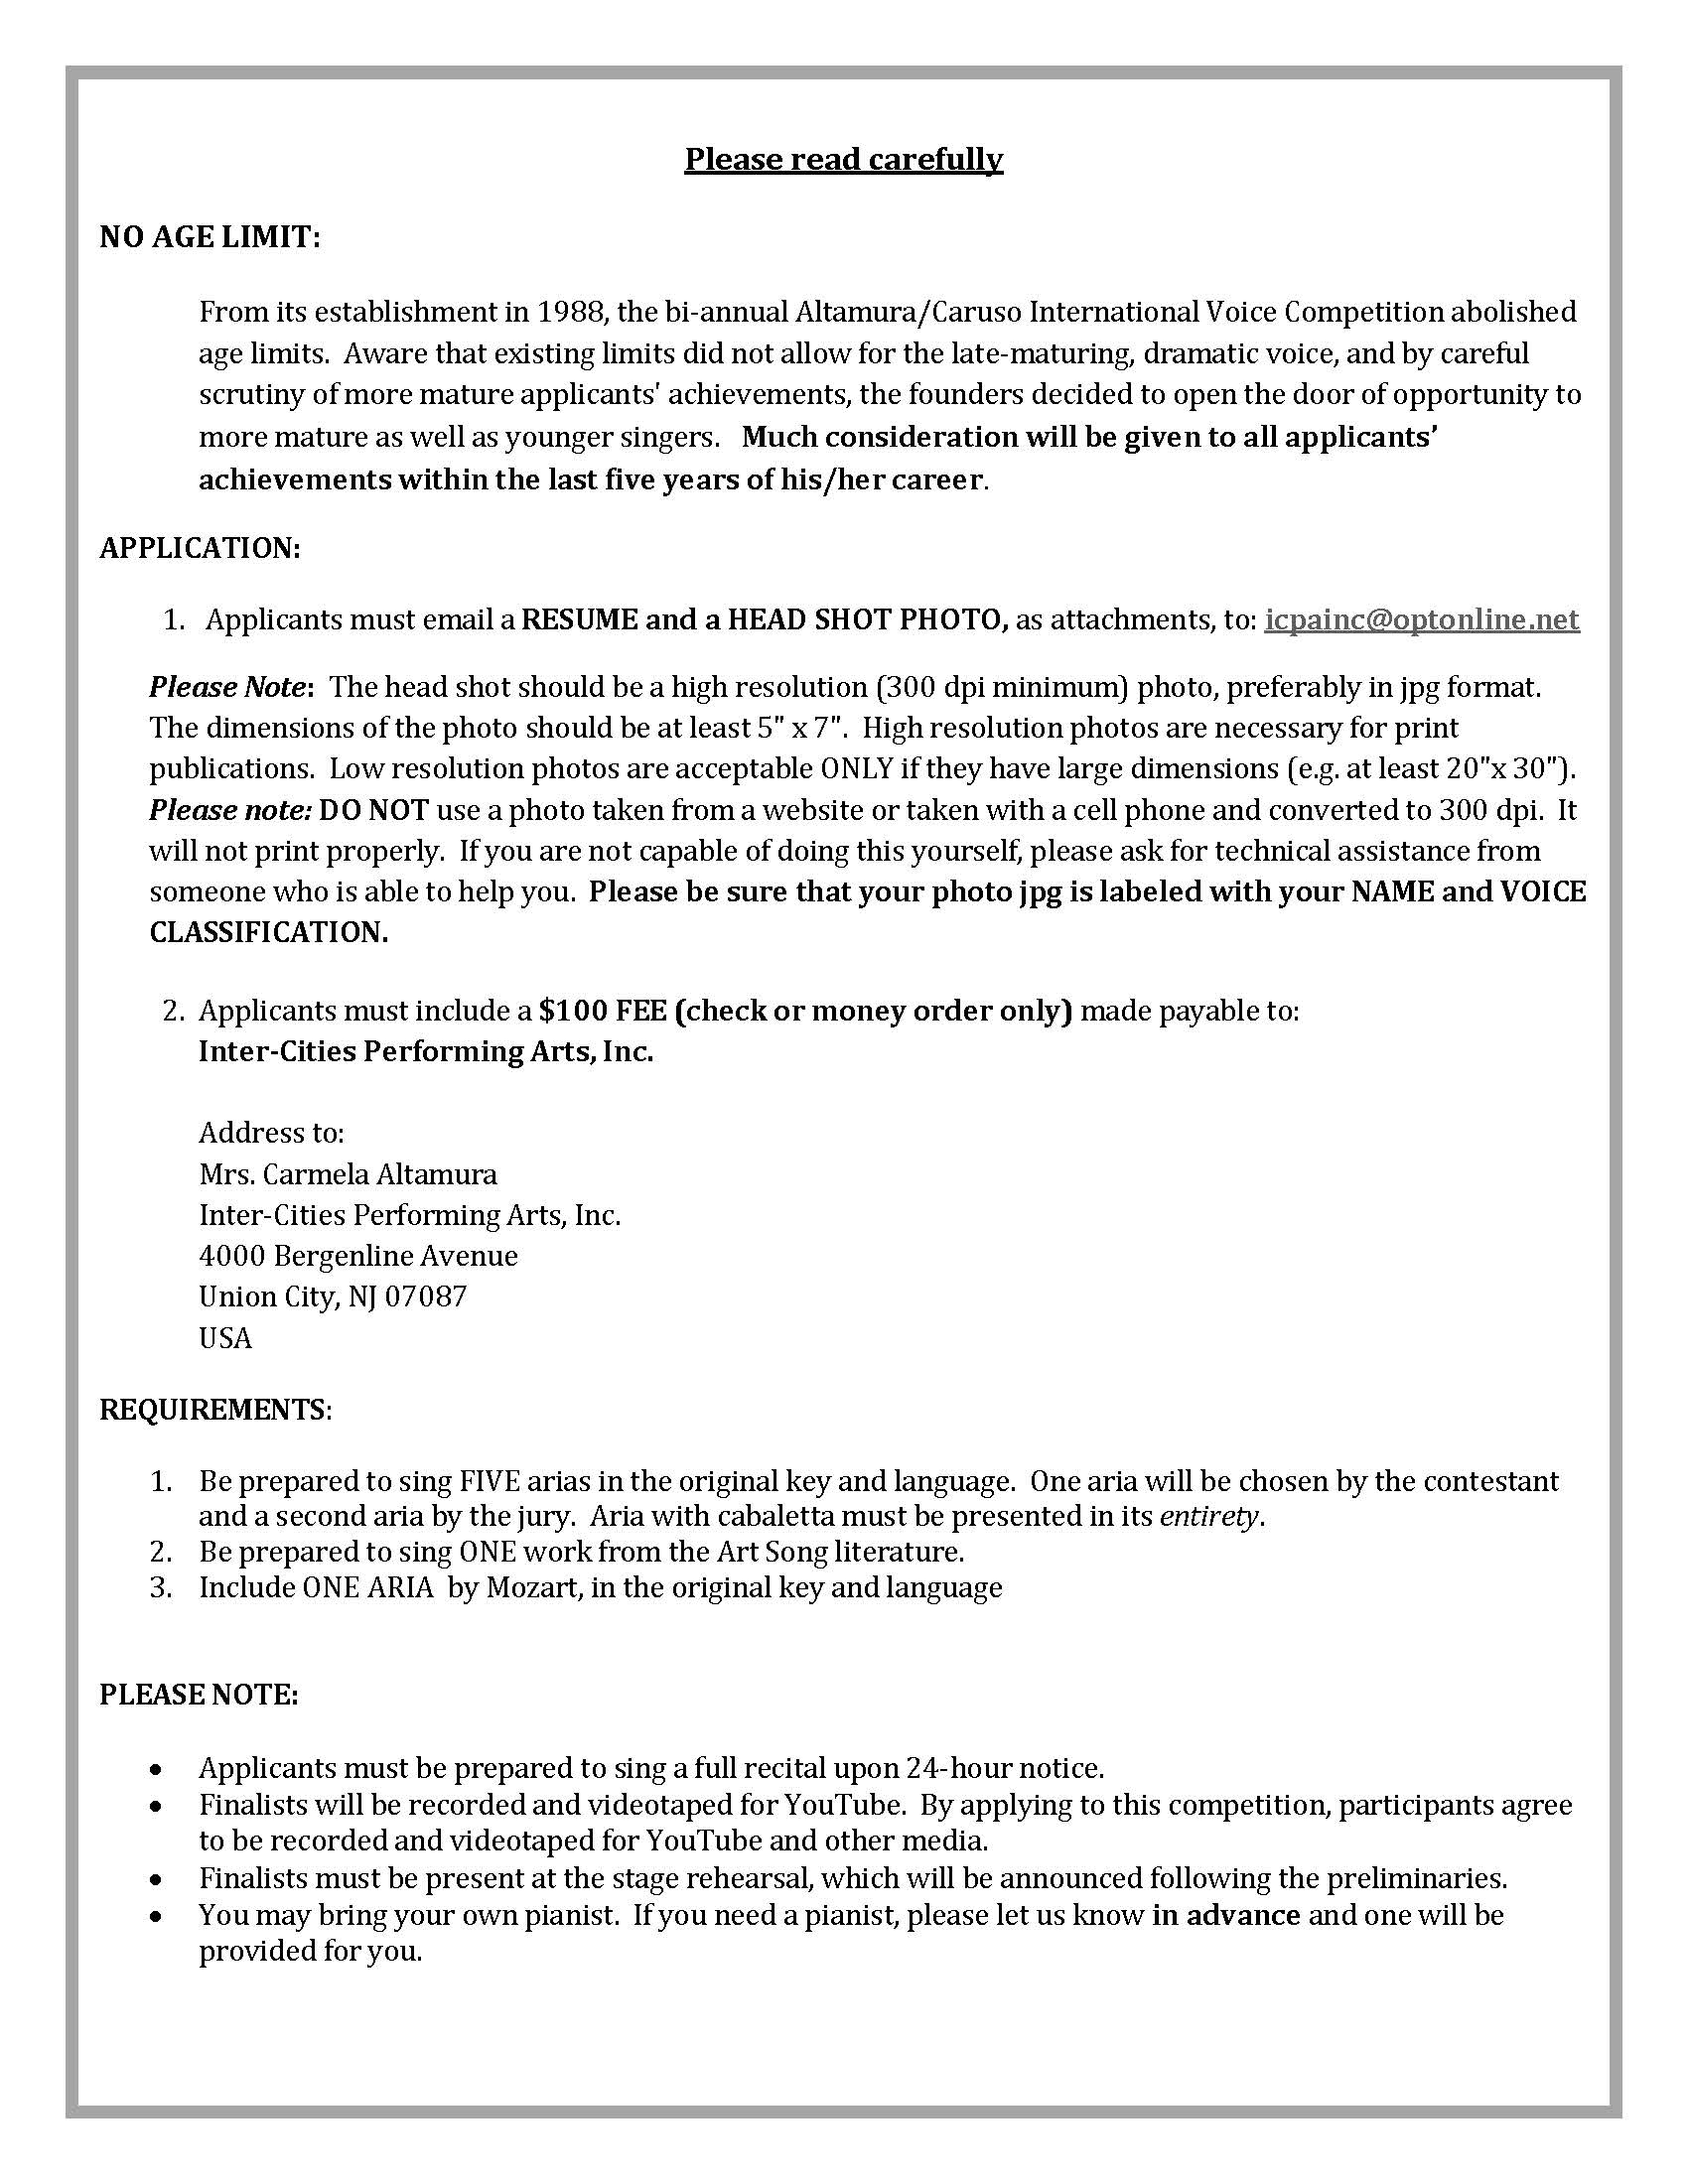 How To Write Your Vocal Range On A Resume Greek Affiliations And Your Resume Corporette 100 Classical Singer Resume How To Write A High